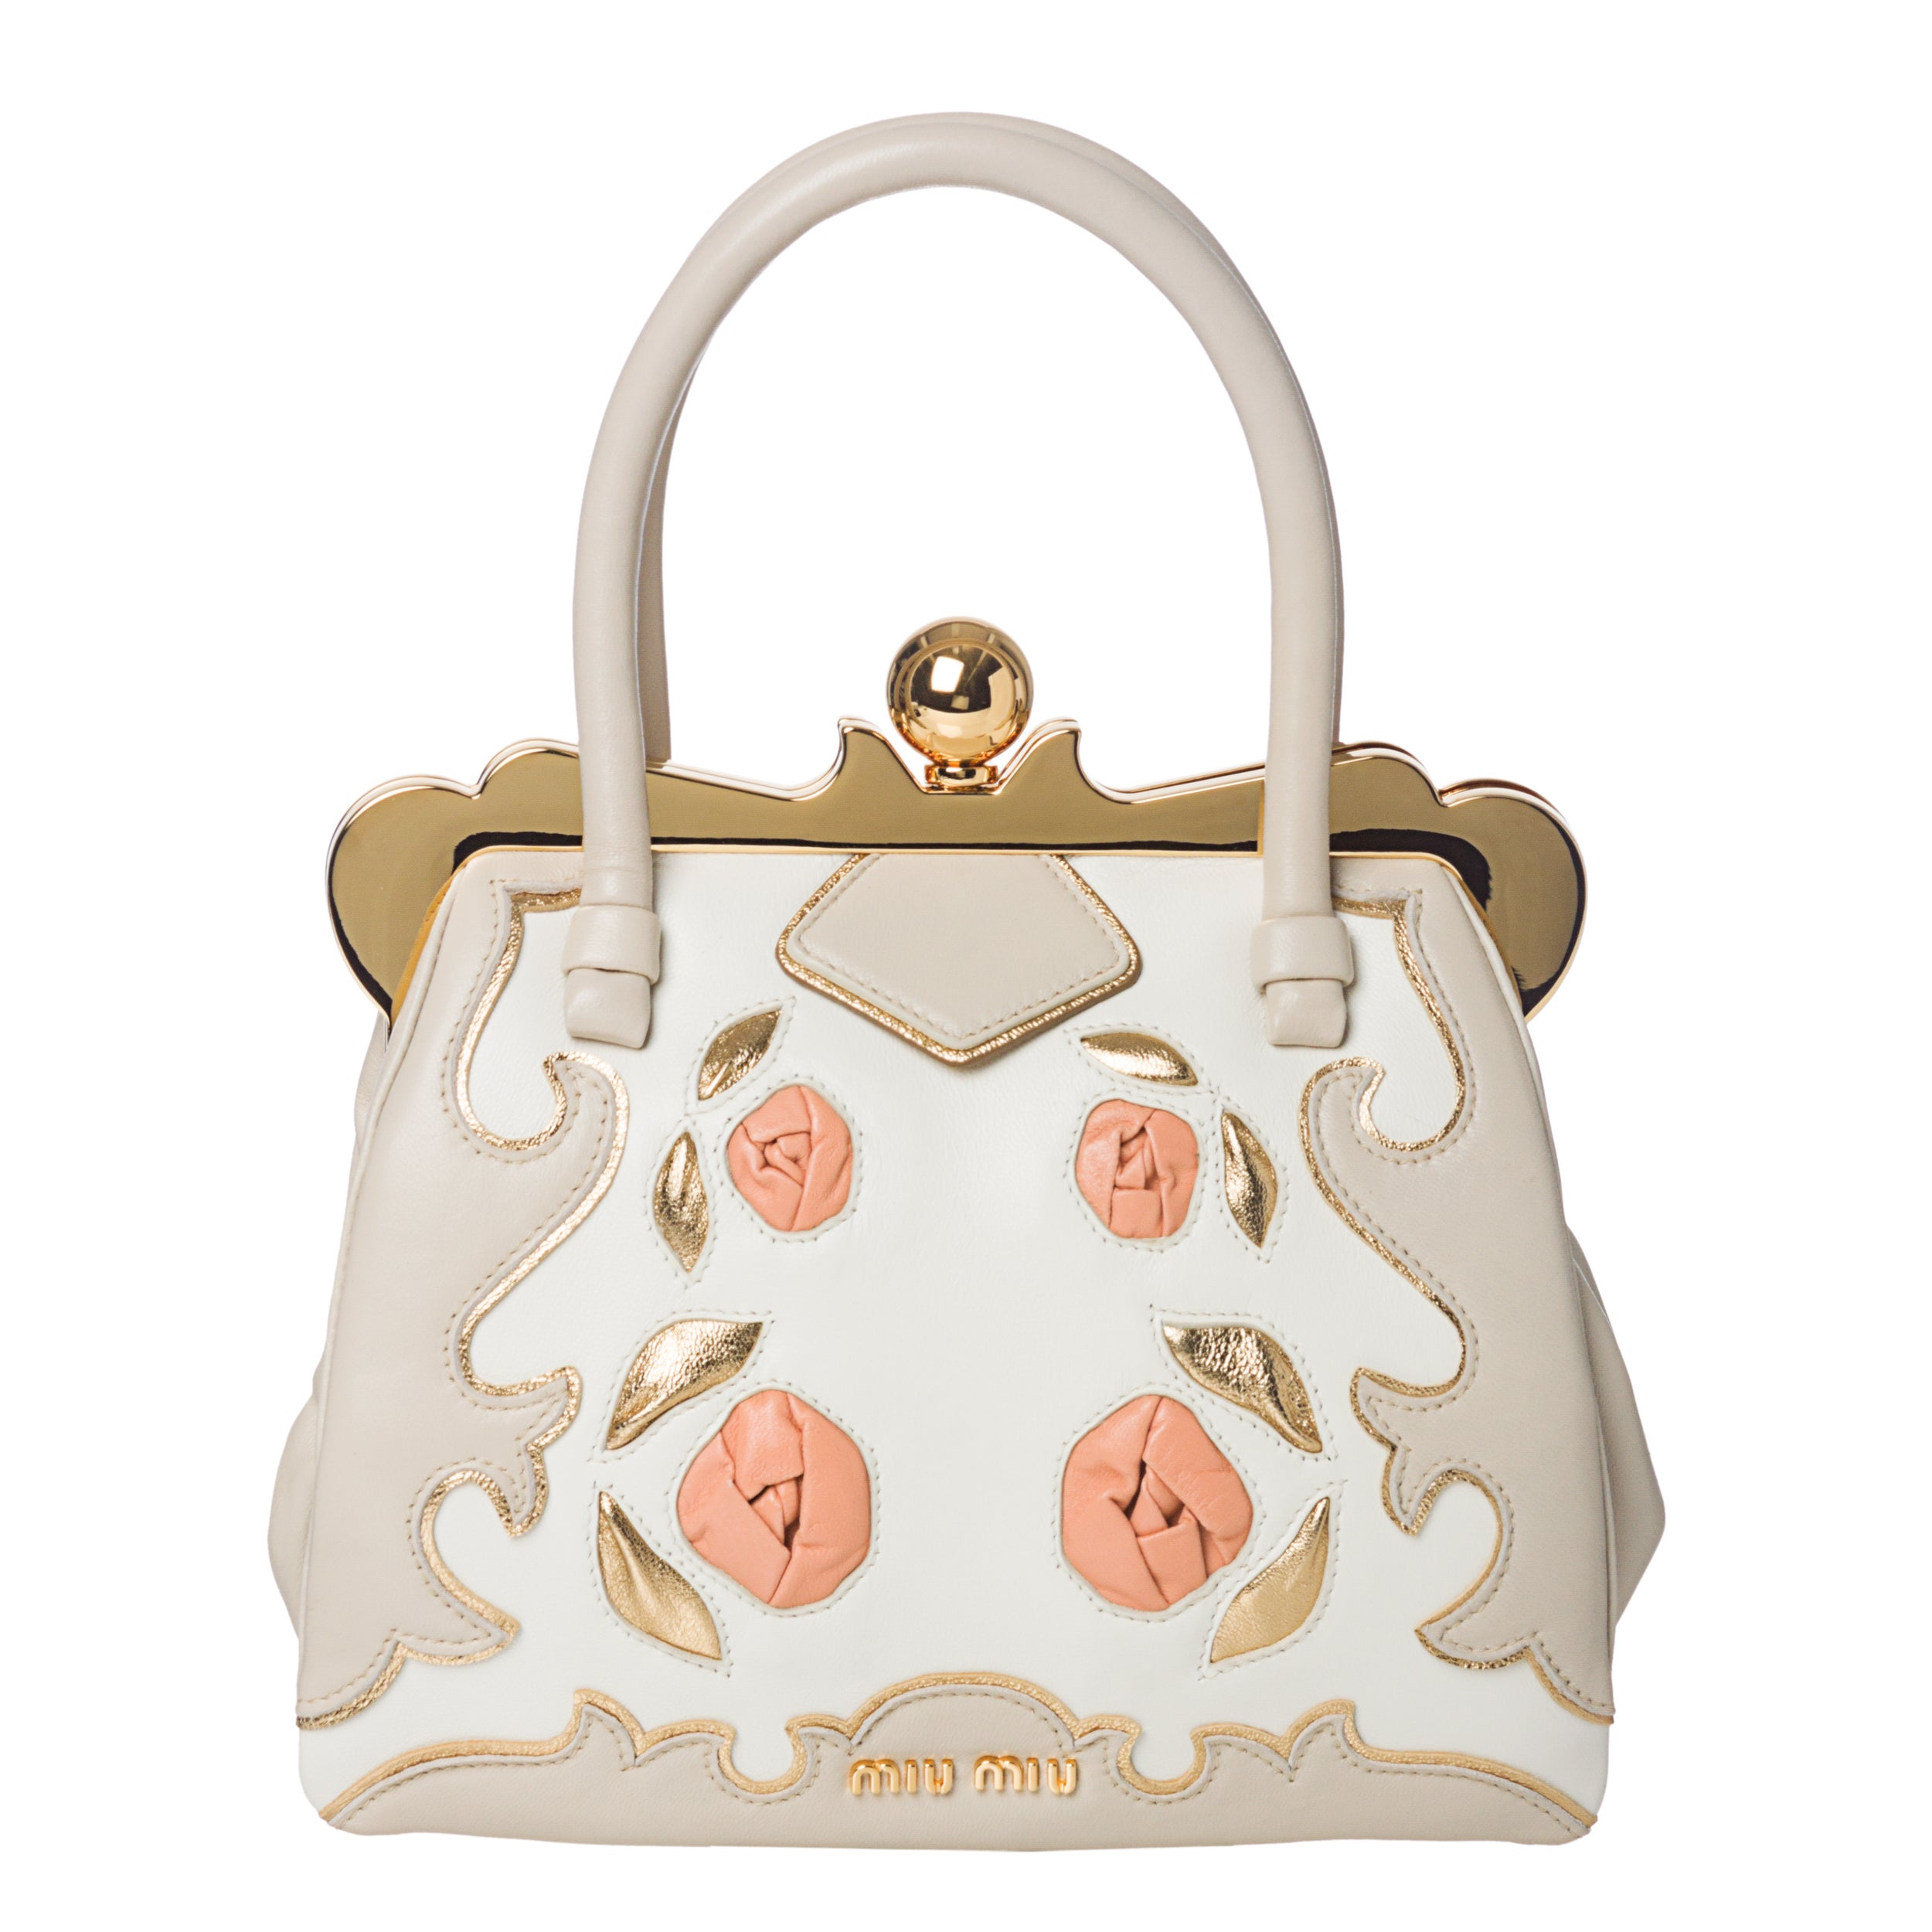 Miu Miu Handbag with Rose Embellishment - Thumbnail 0